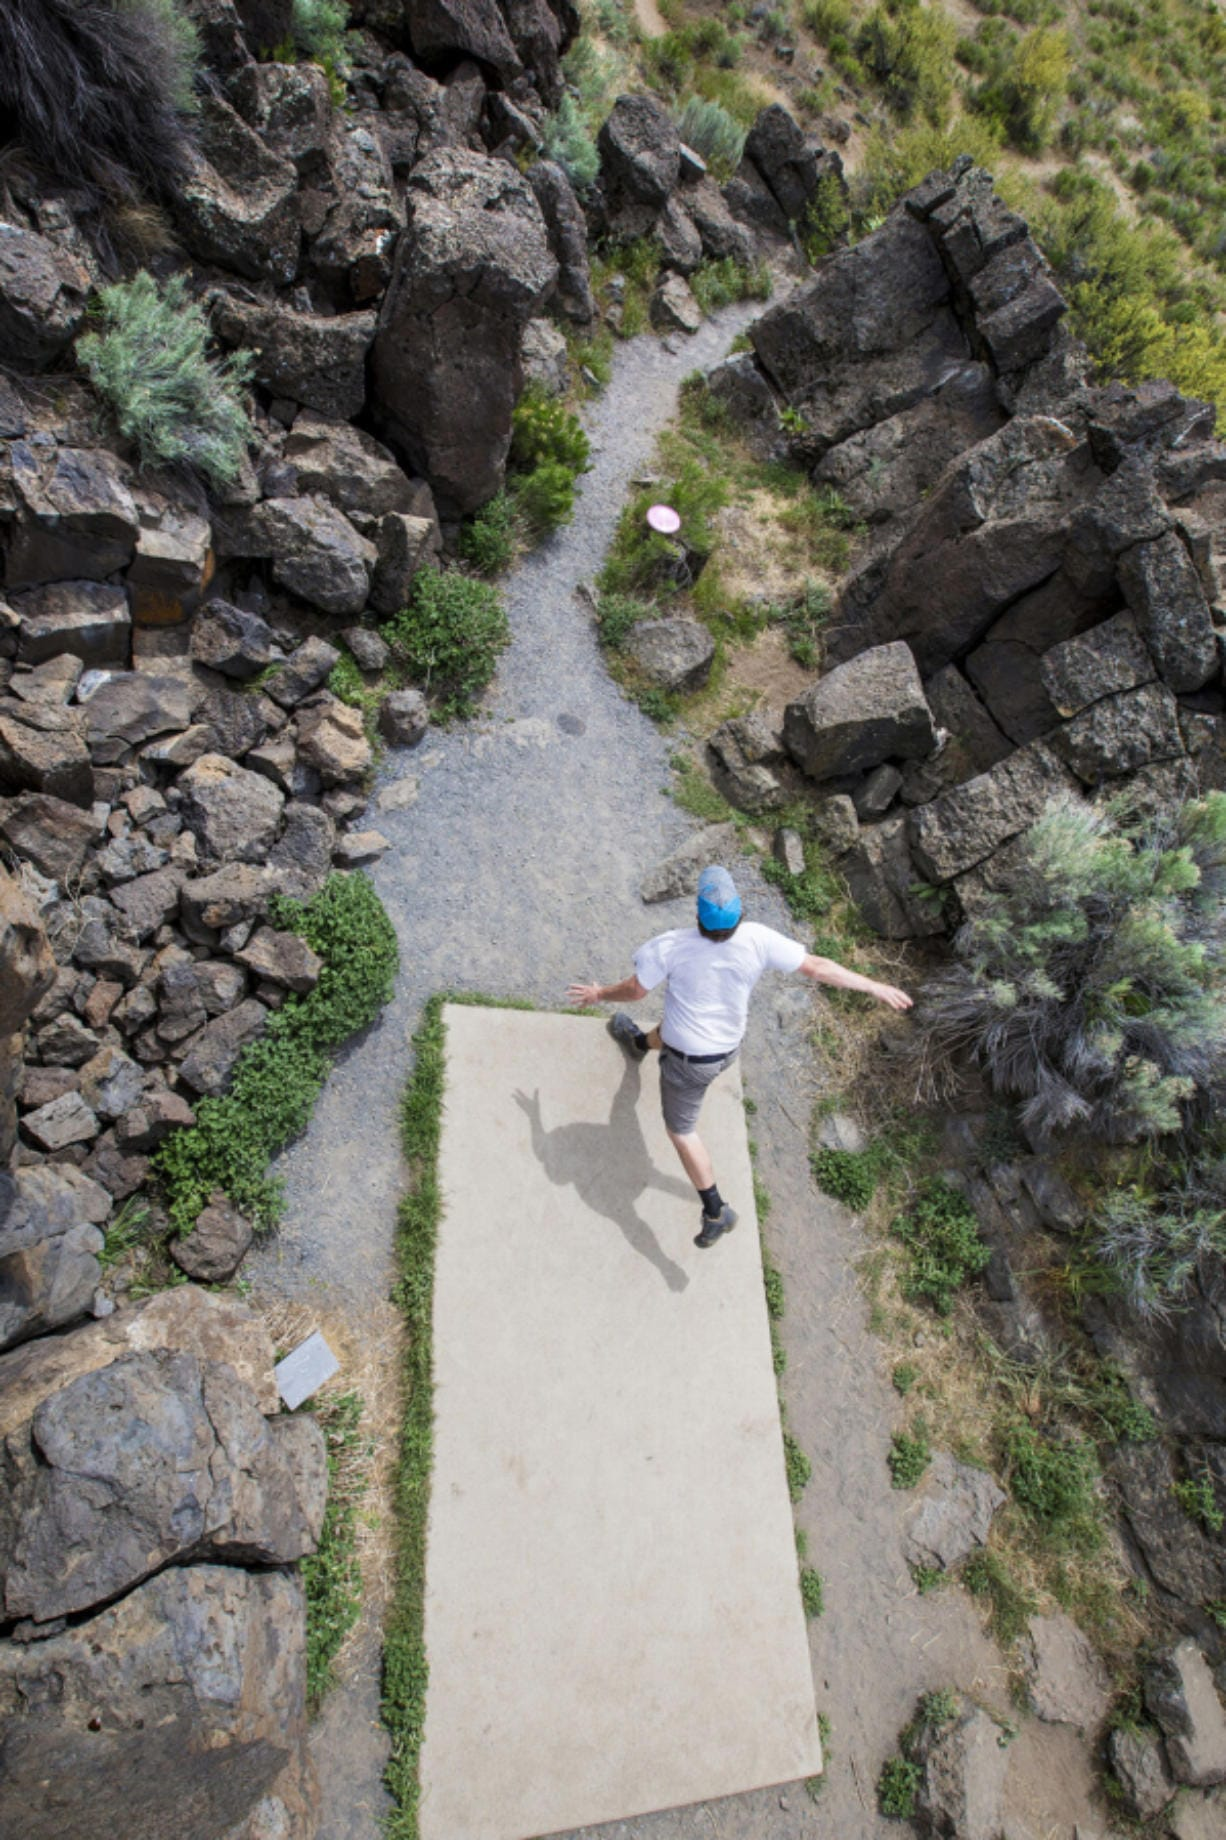 Nate Anderson of Bend throws his disk through a tight rock outcropping at the seventh hole tee box during a round of disk golf at Pine Nursery Park this summer.